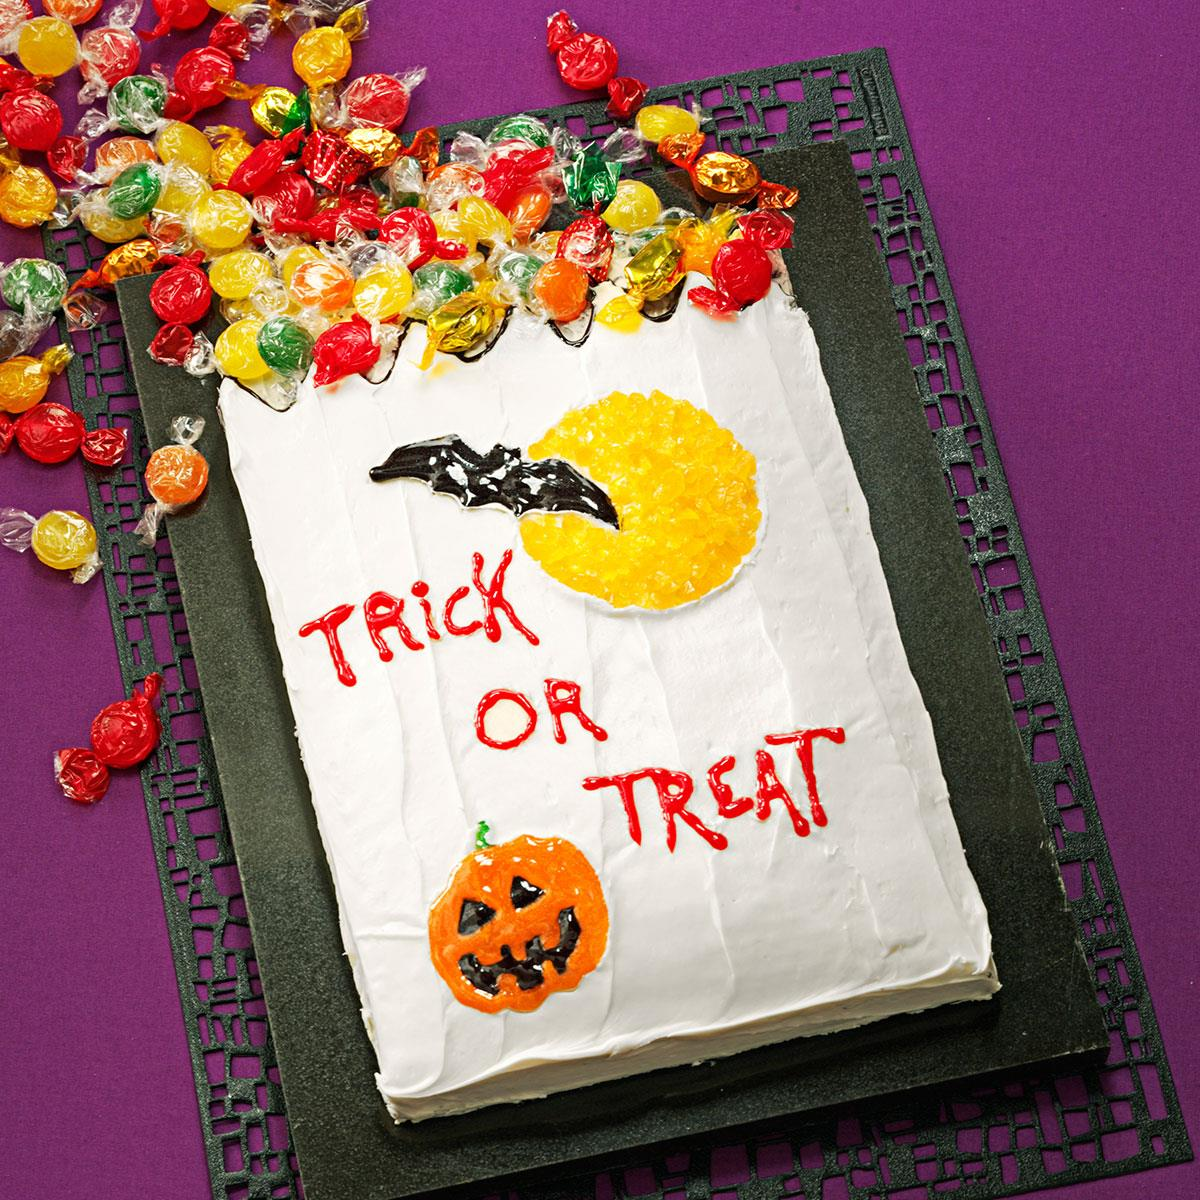 TrickorTreat Cake Recipe Taste of Home